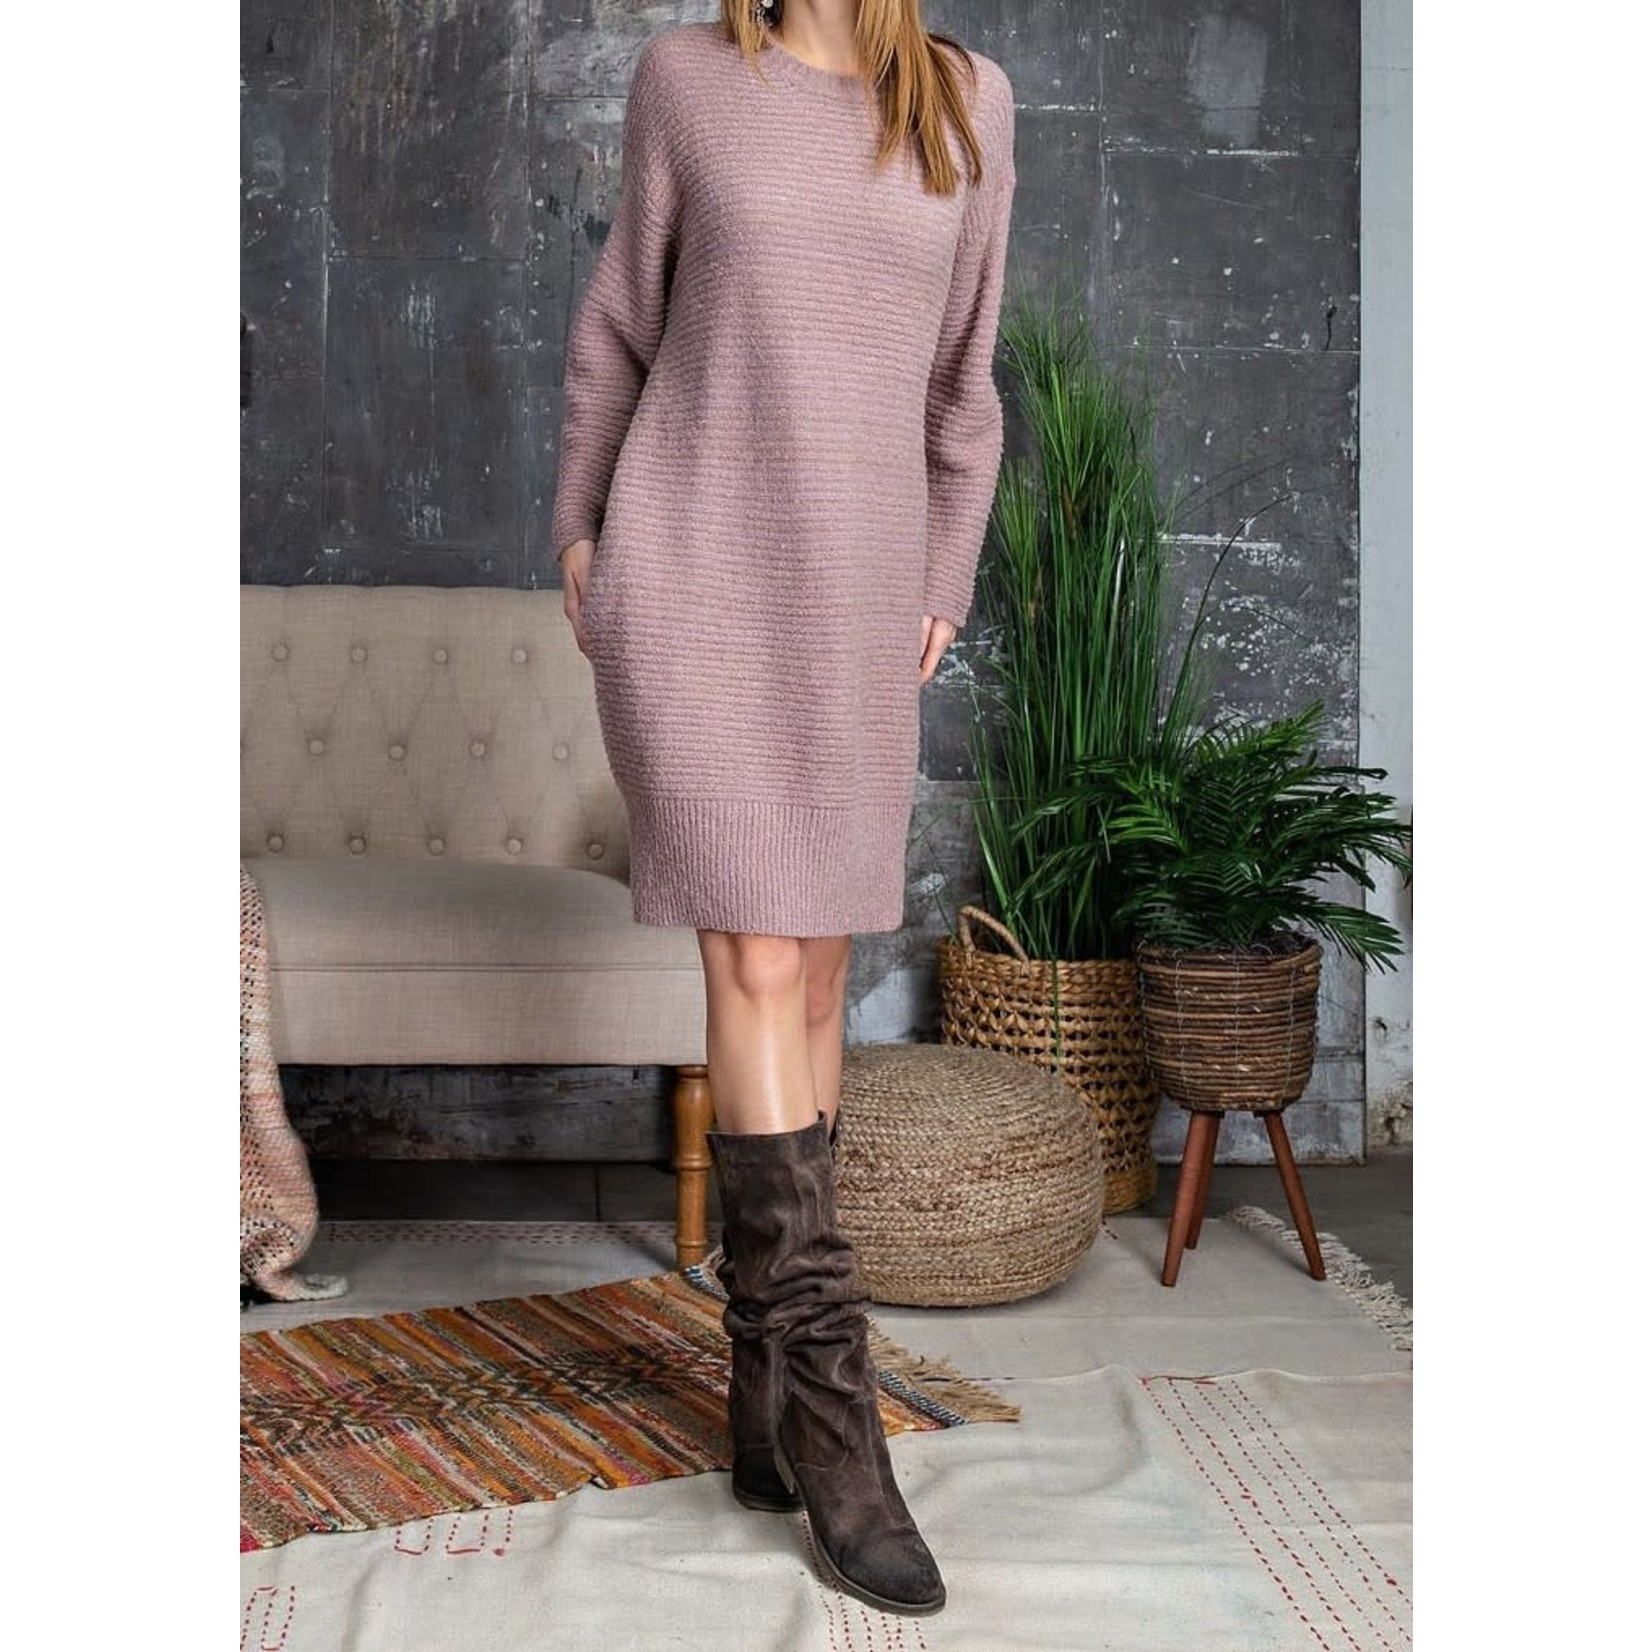 Easel Dress: Mauve Knitted Sweater